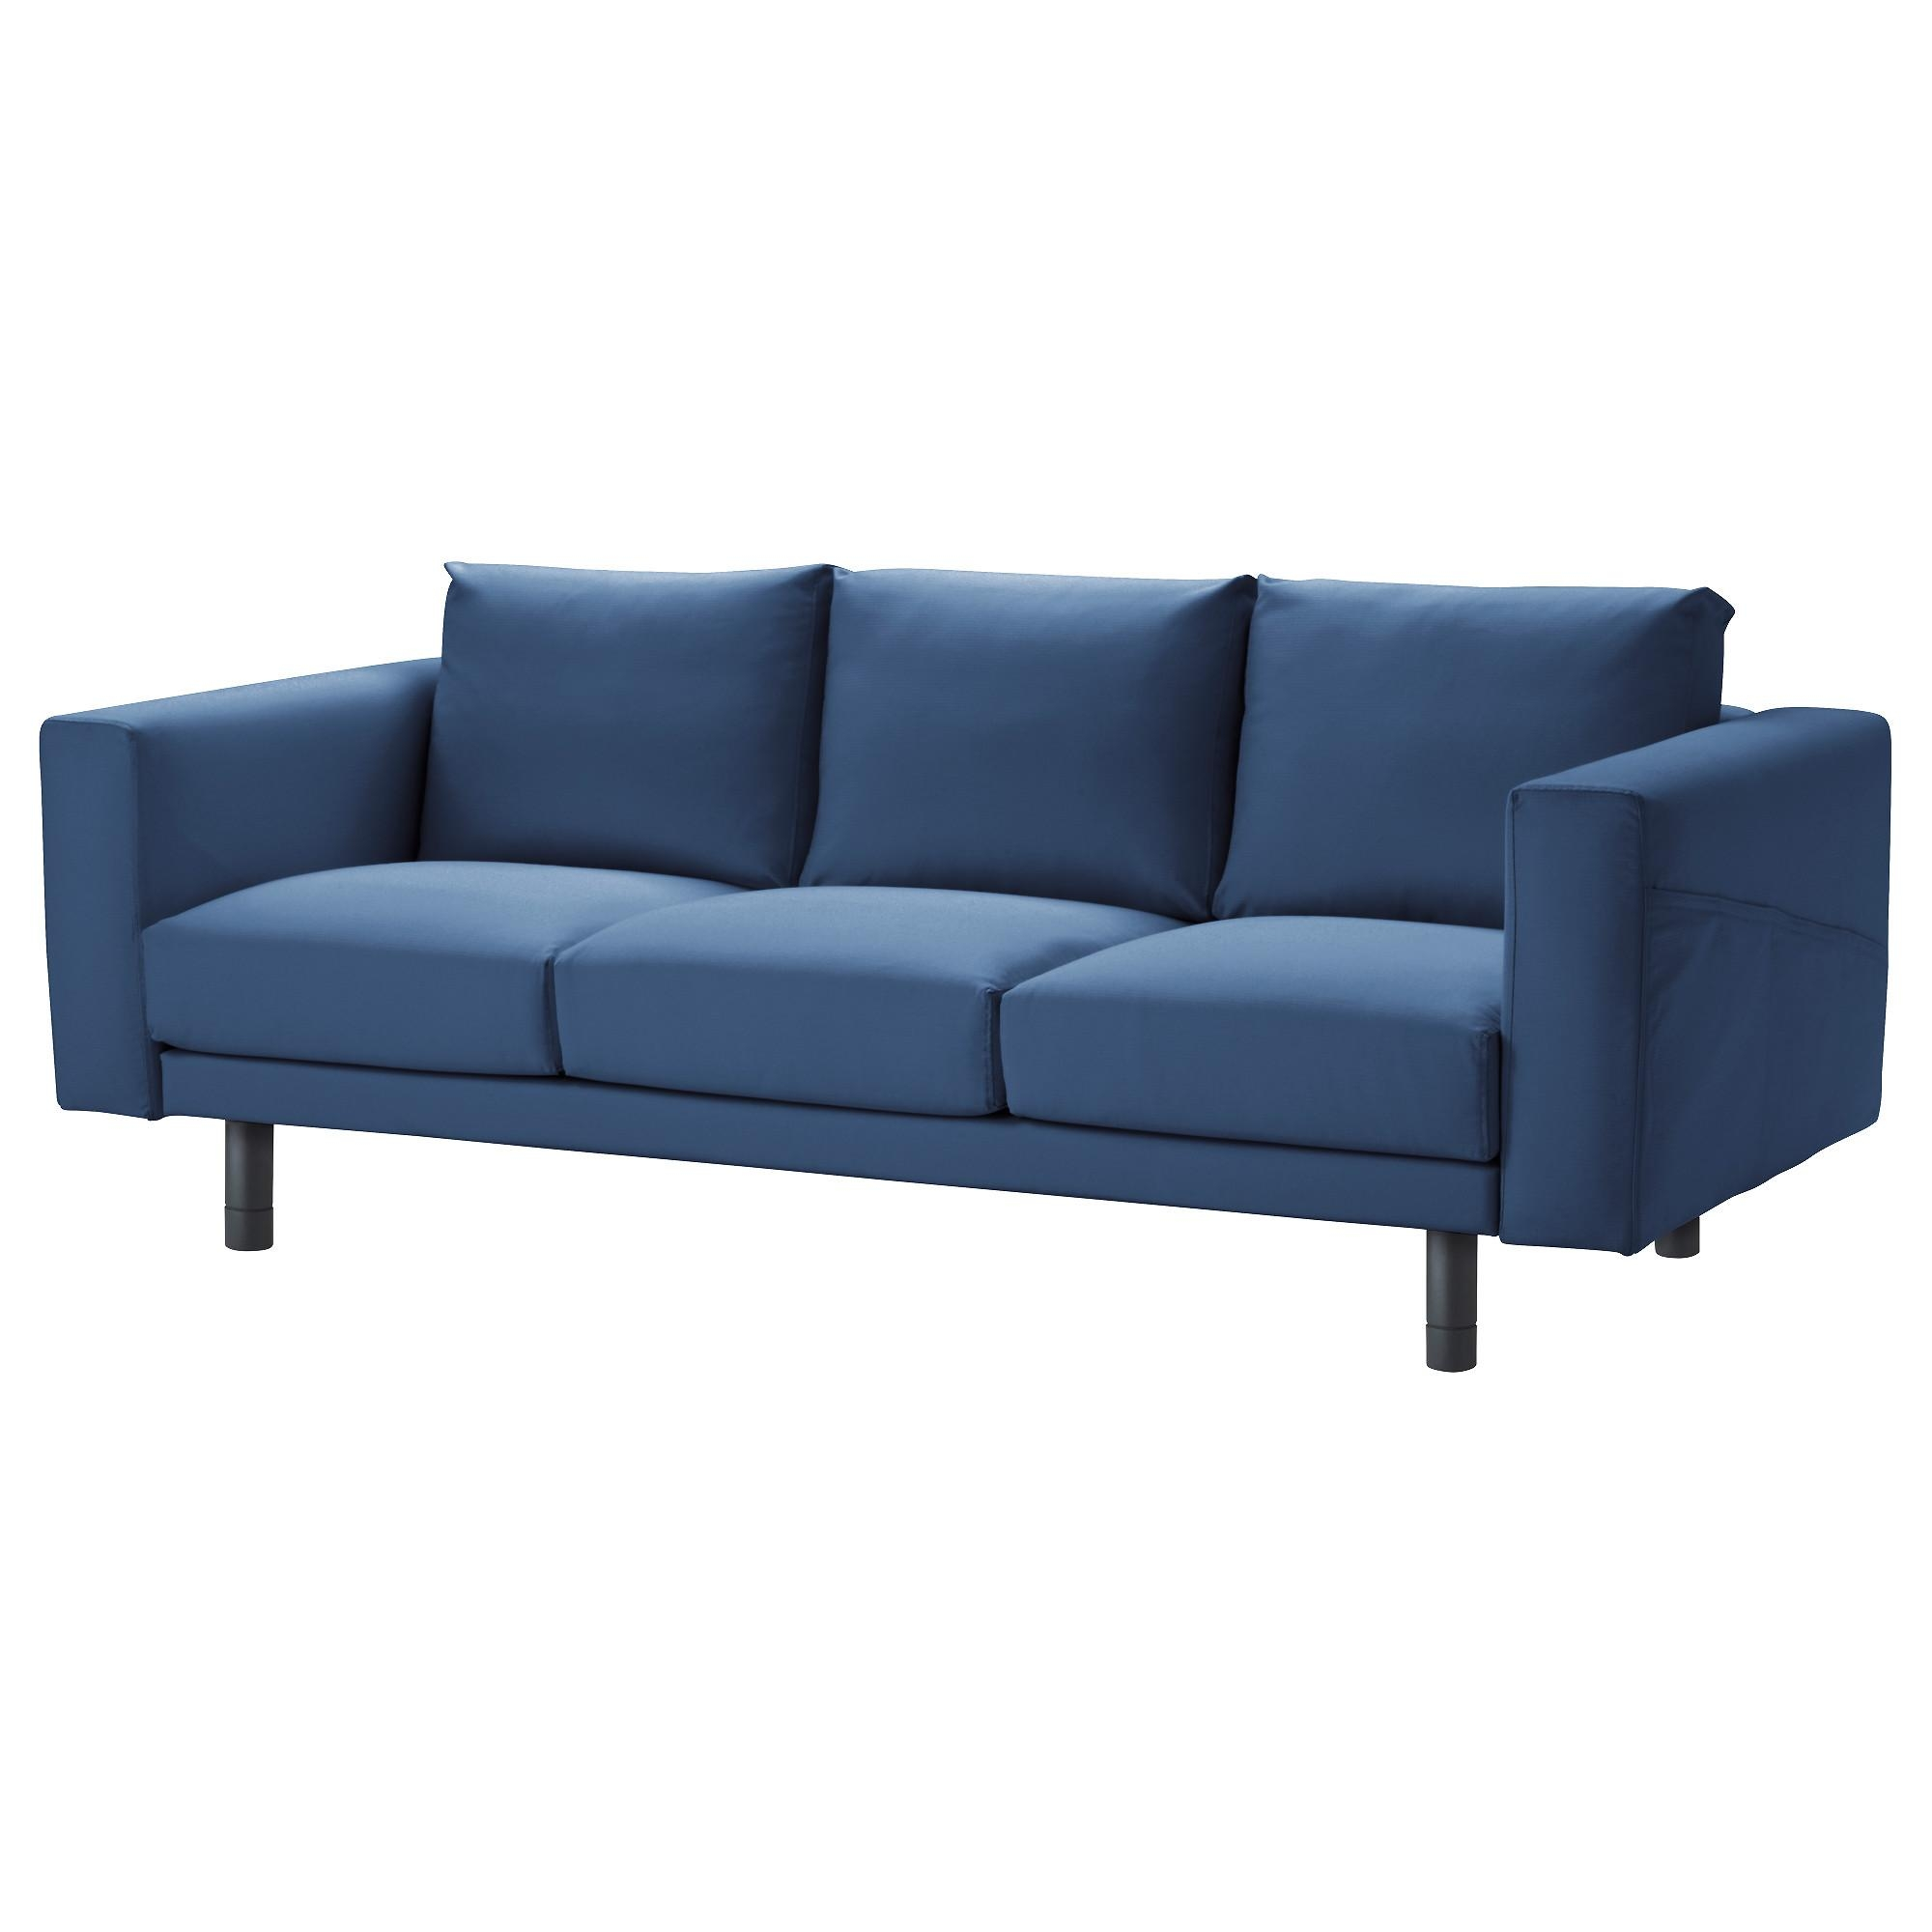 Fabric Sofas – Ikea Inside Blue And White Striped Sofas (View 19 of 20)